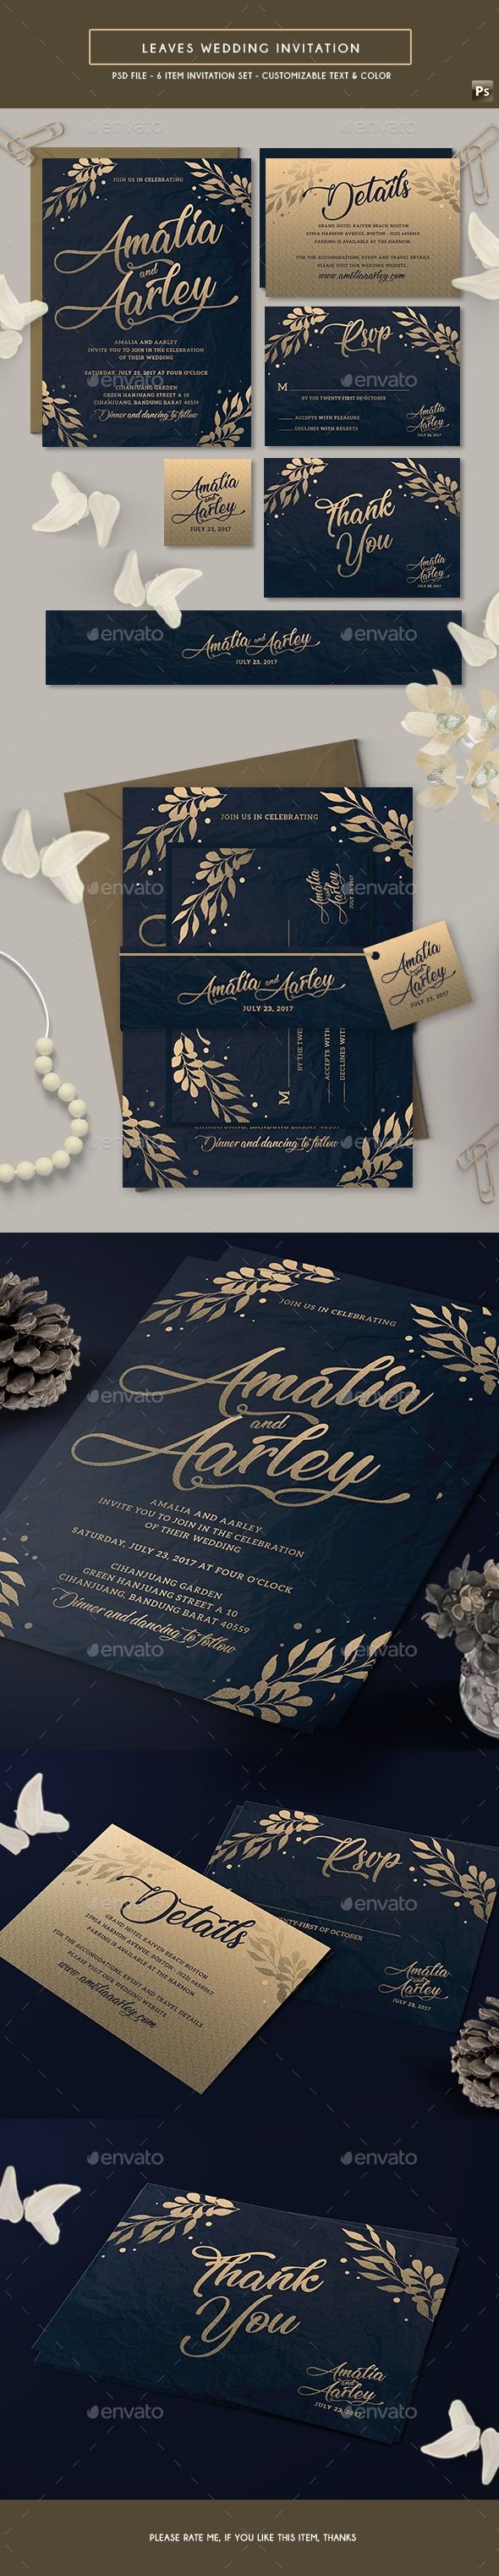 free wedding invitation psd%0A Leaves Wedding Invitation Template PSD